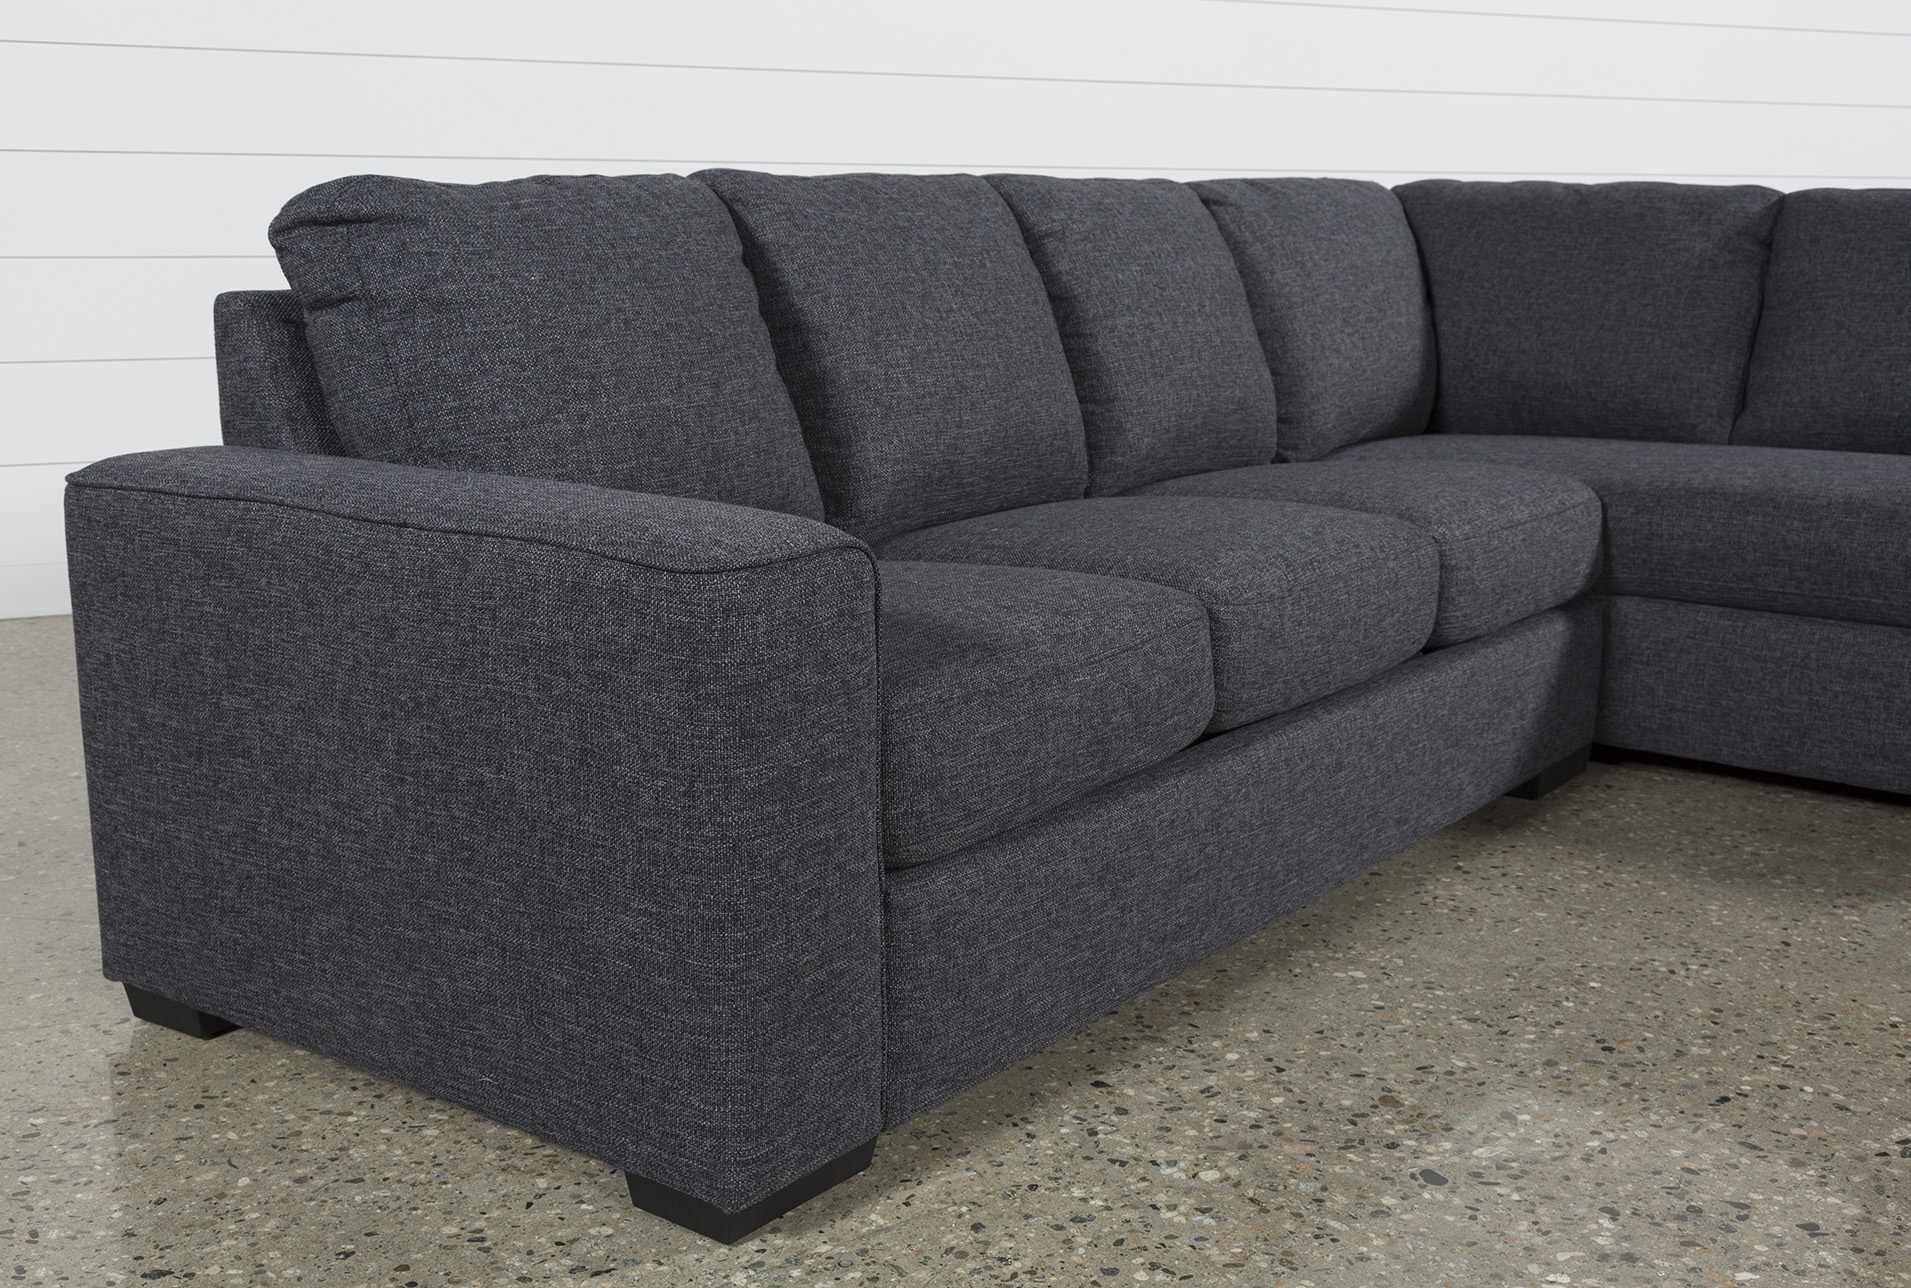 Lucy Dark Grey 2 Piece Sectional W/raf Chaise | Pinterest | Dark regarding Lucy Dark Grey 2 Piece Sleeper Sectionals With Raf Chaise (Image 14 of 30)